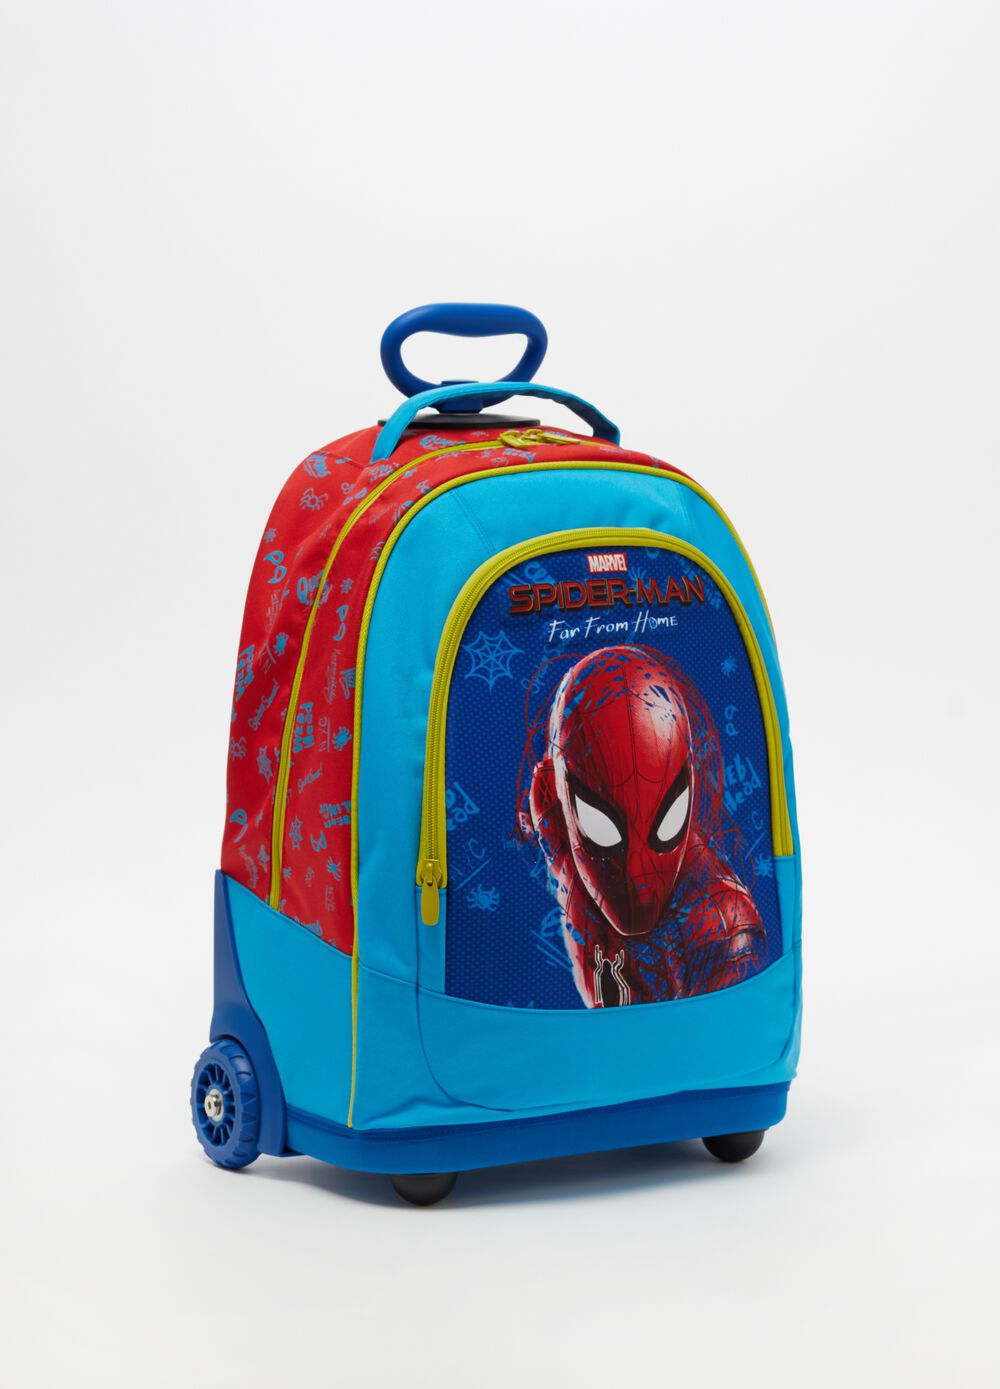 Spider-Man Far From Home trolley